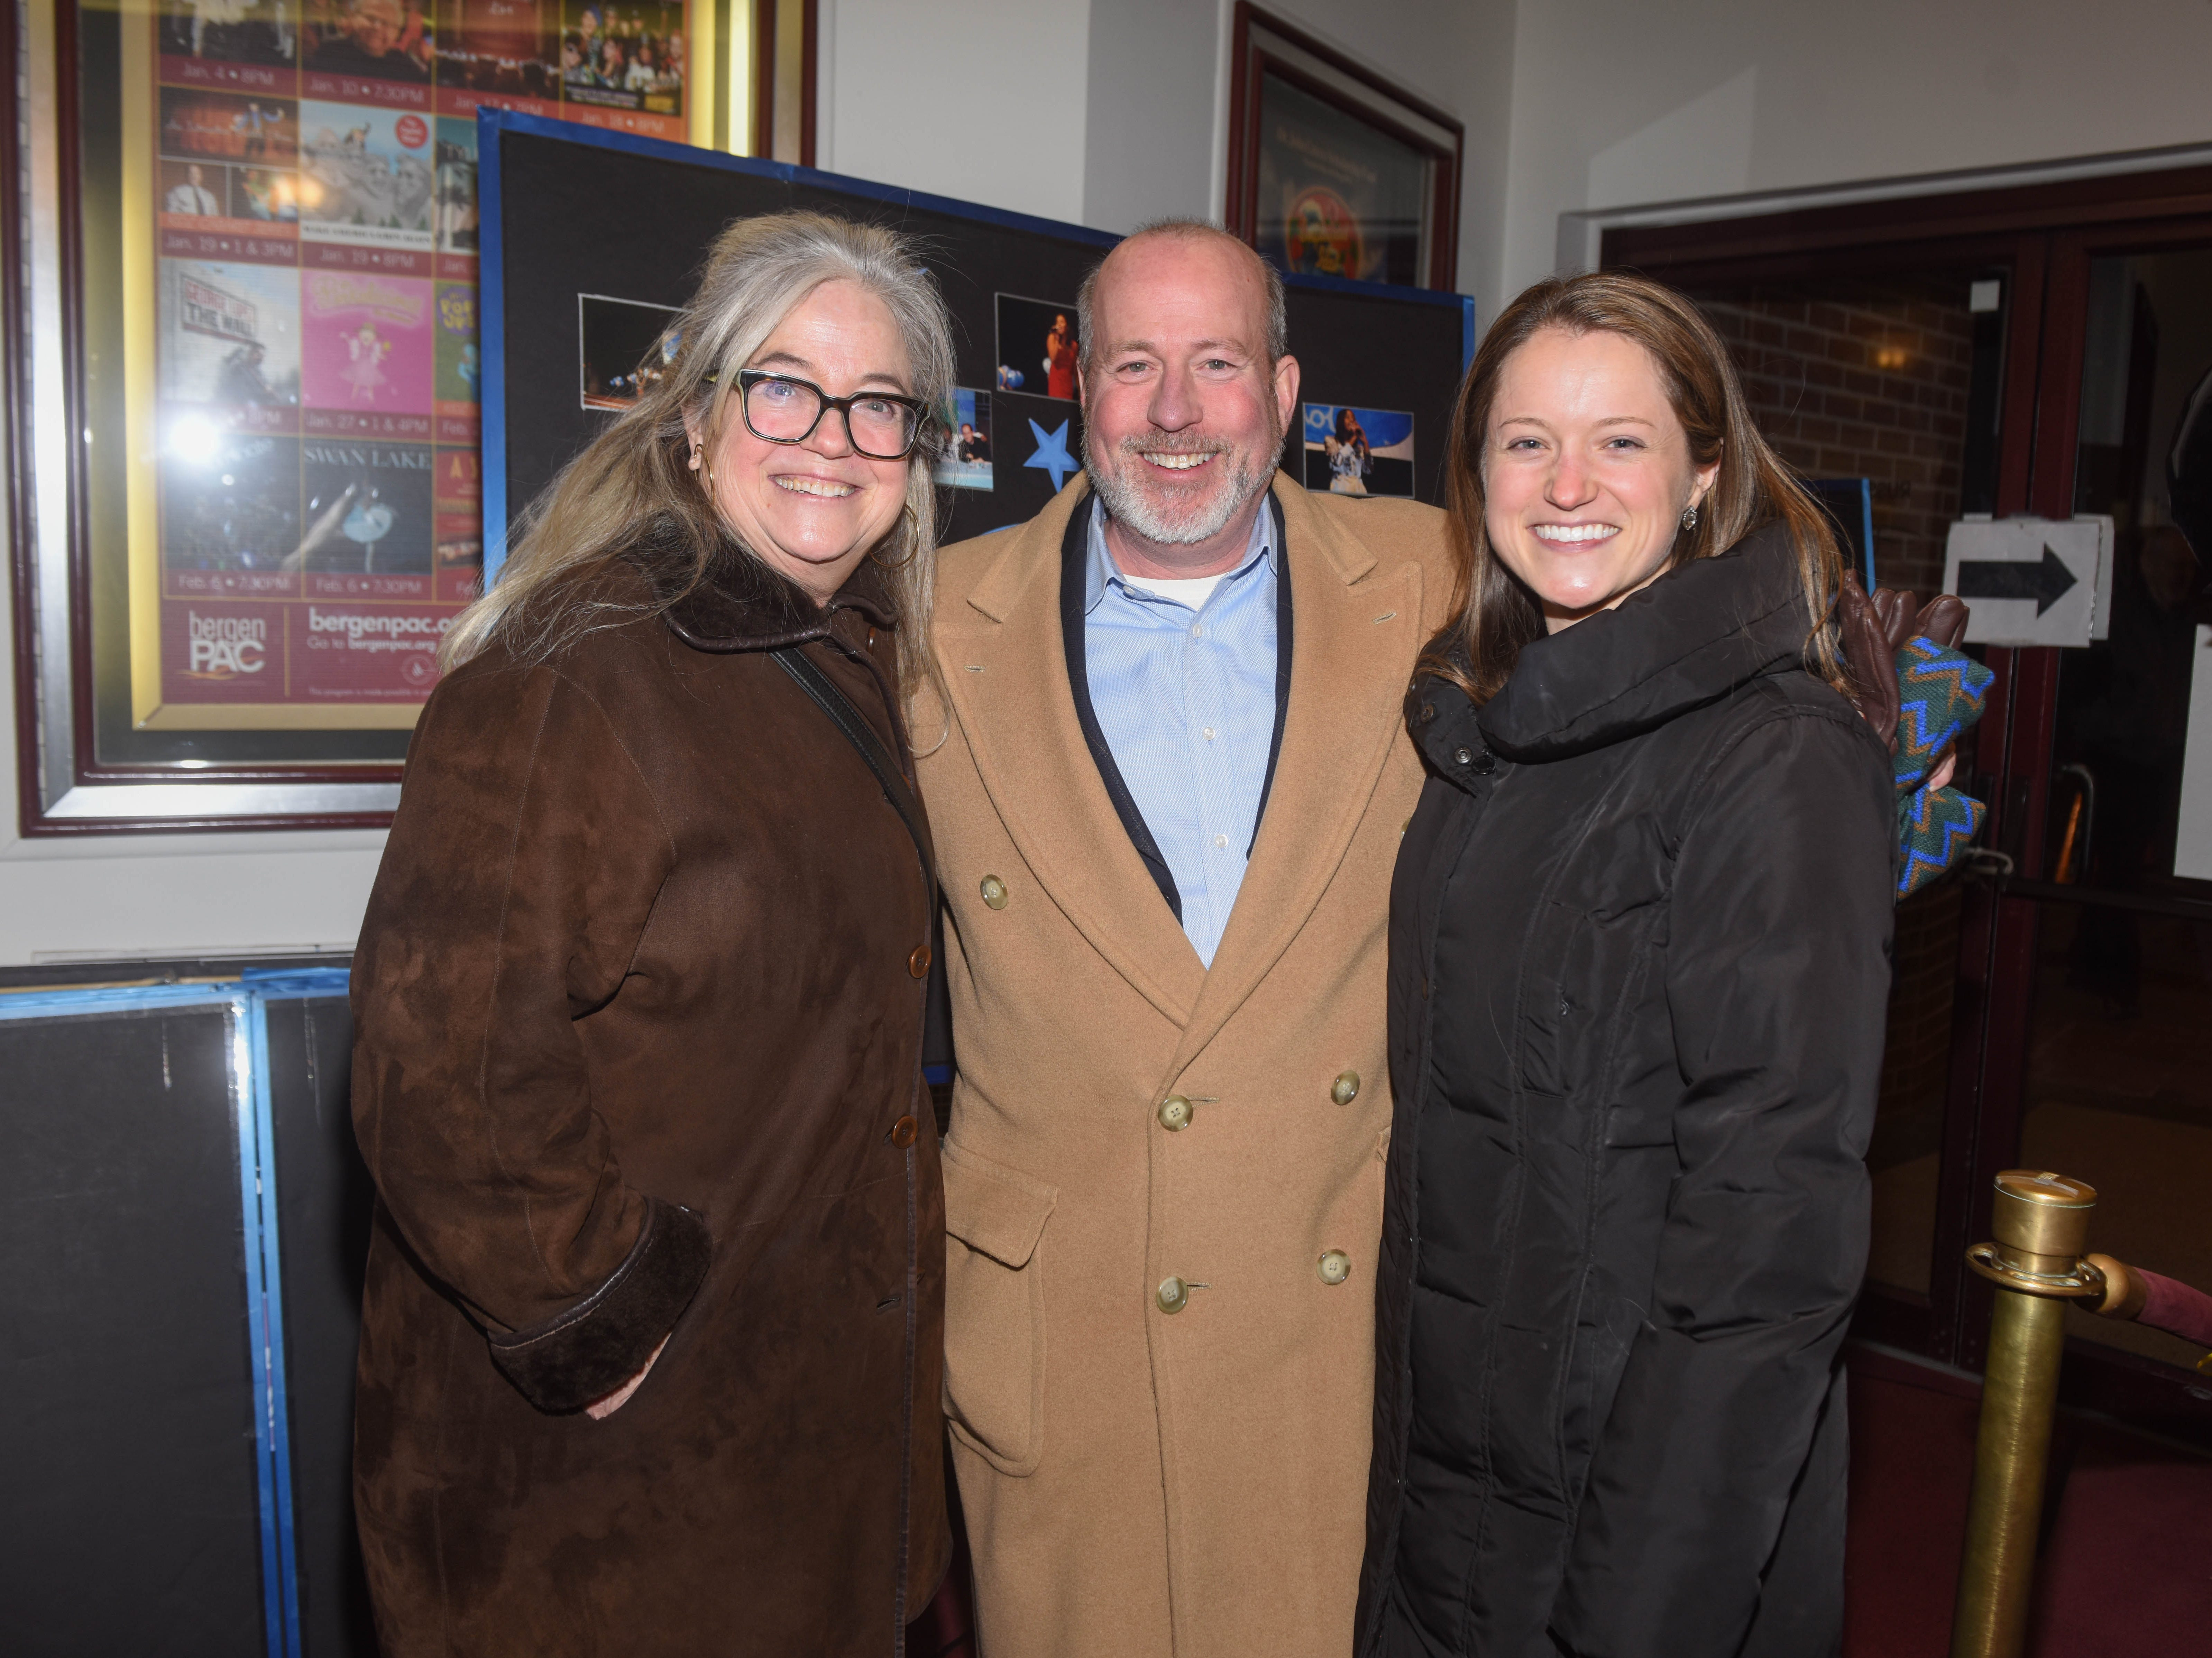 Sally Barfoot, Peter Colquitt and Emily Barfoot. The 2019 Englewood Idol was held at bergenPAC theater. The singing competition is open to any high school student who currently lives or goes to school in Englewood, NJ. This years winner was Genesis Capellan. 01/11/2019